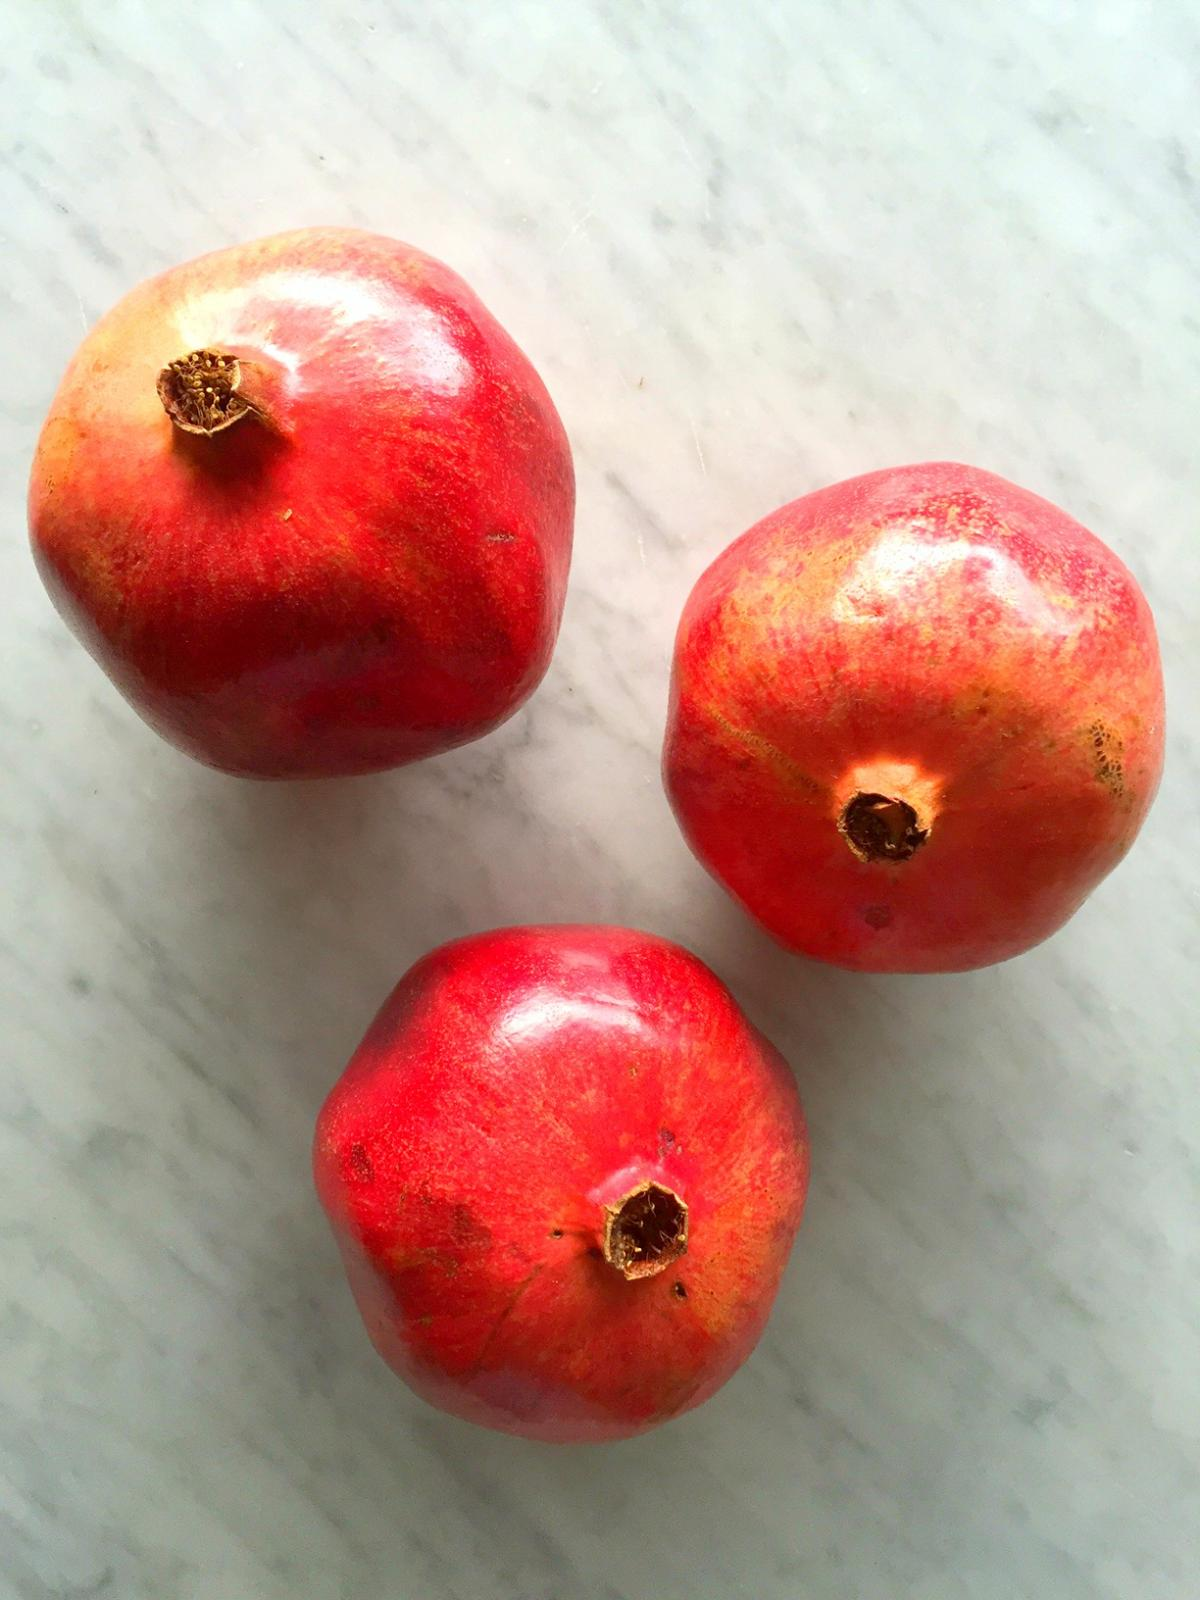 Pomegranate Pics How To Pick A Ripe Pomegranate Allrecipes